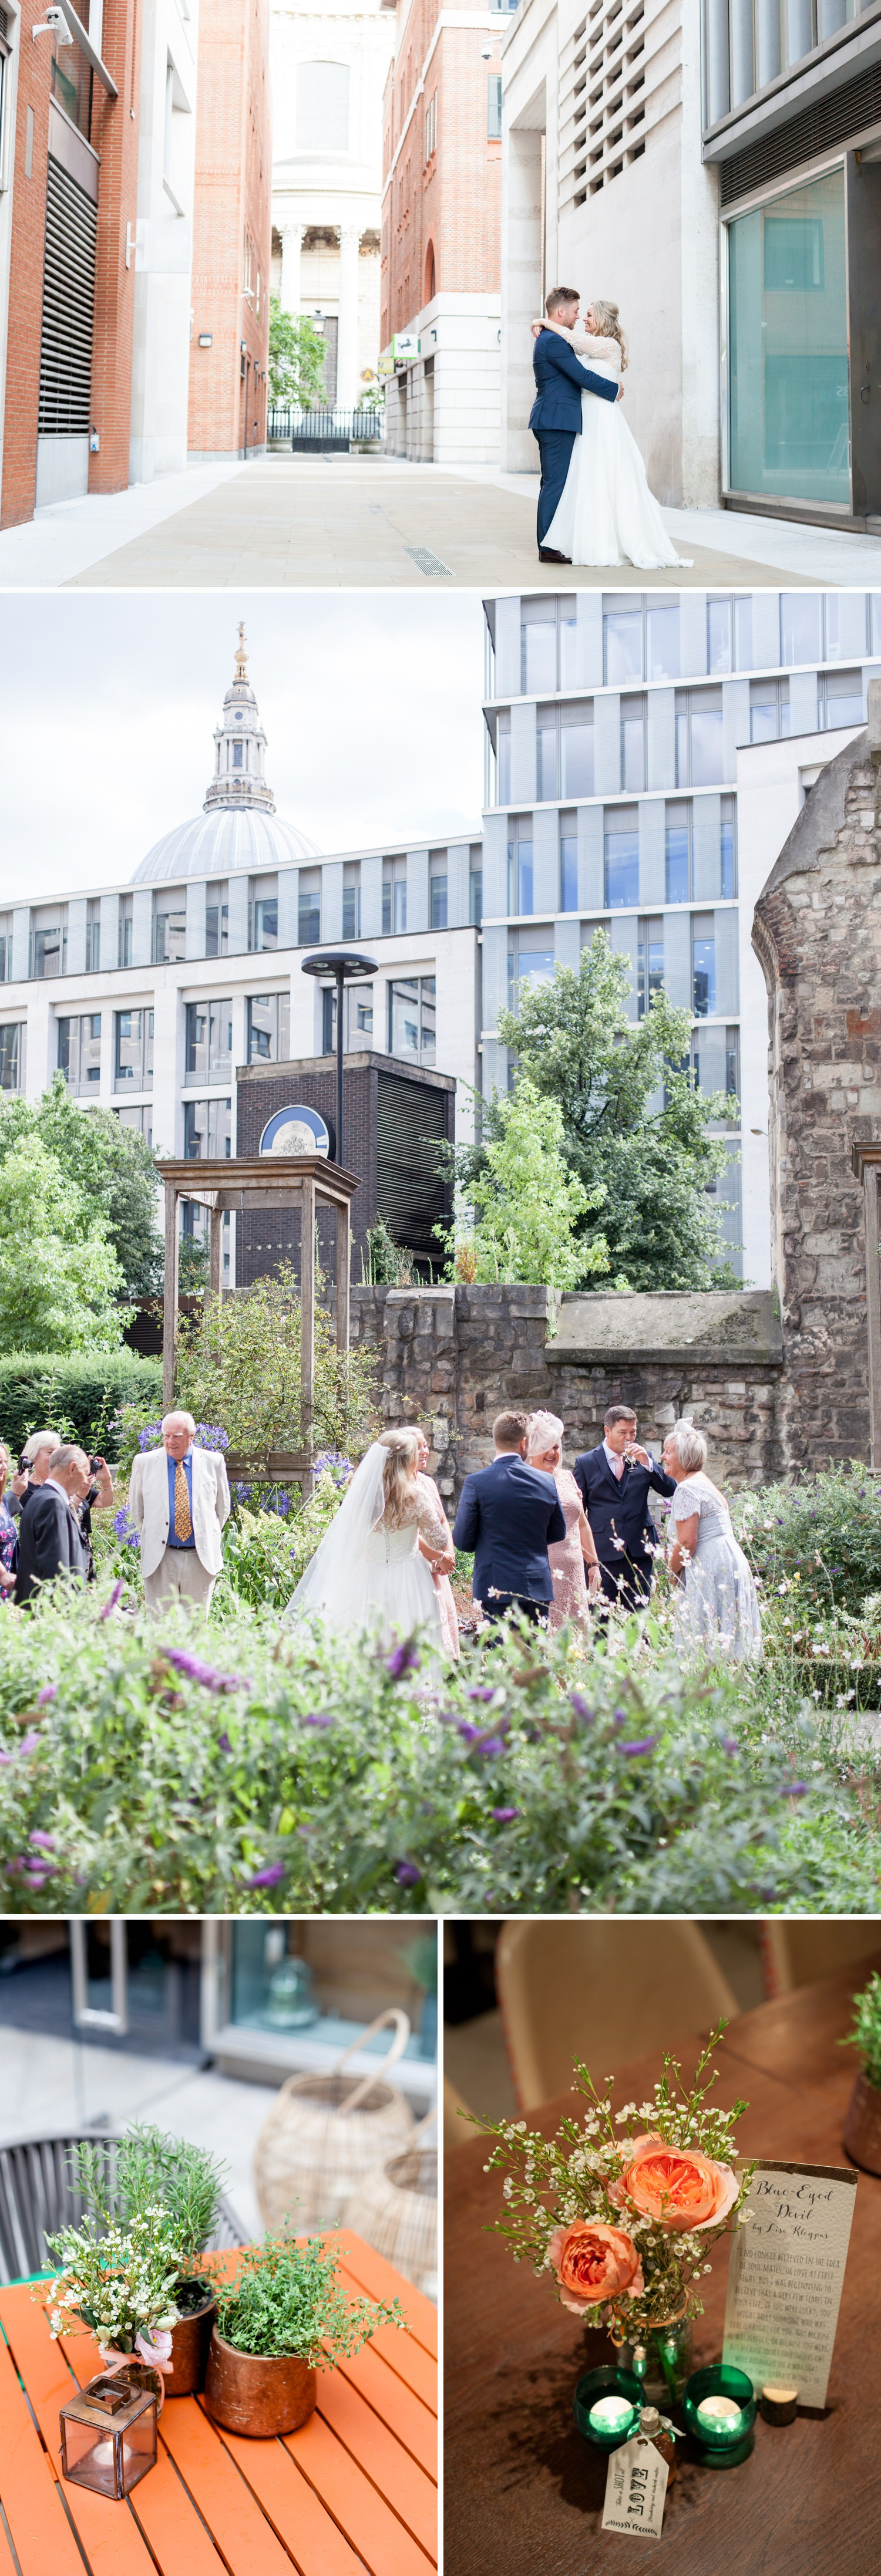 Charlotte & Adam's St. Paul's Cathedral wedding - a city wedding reception